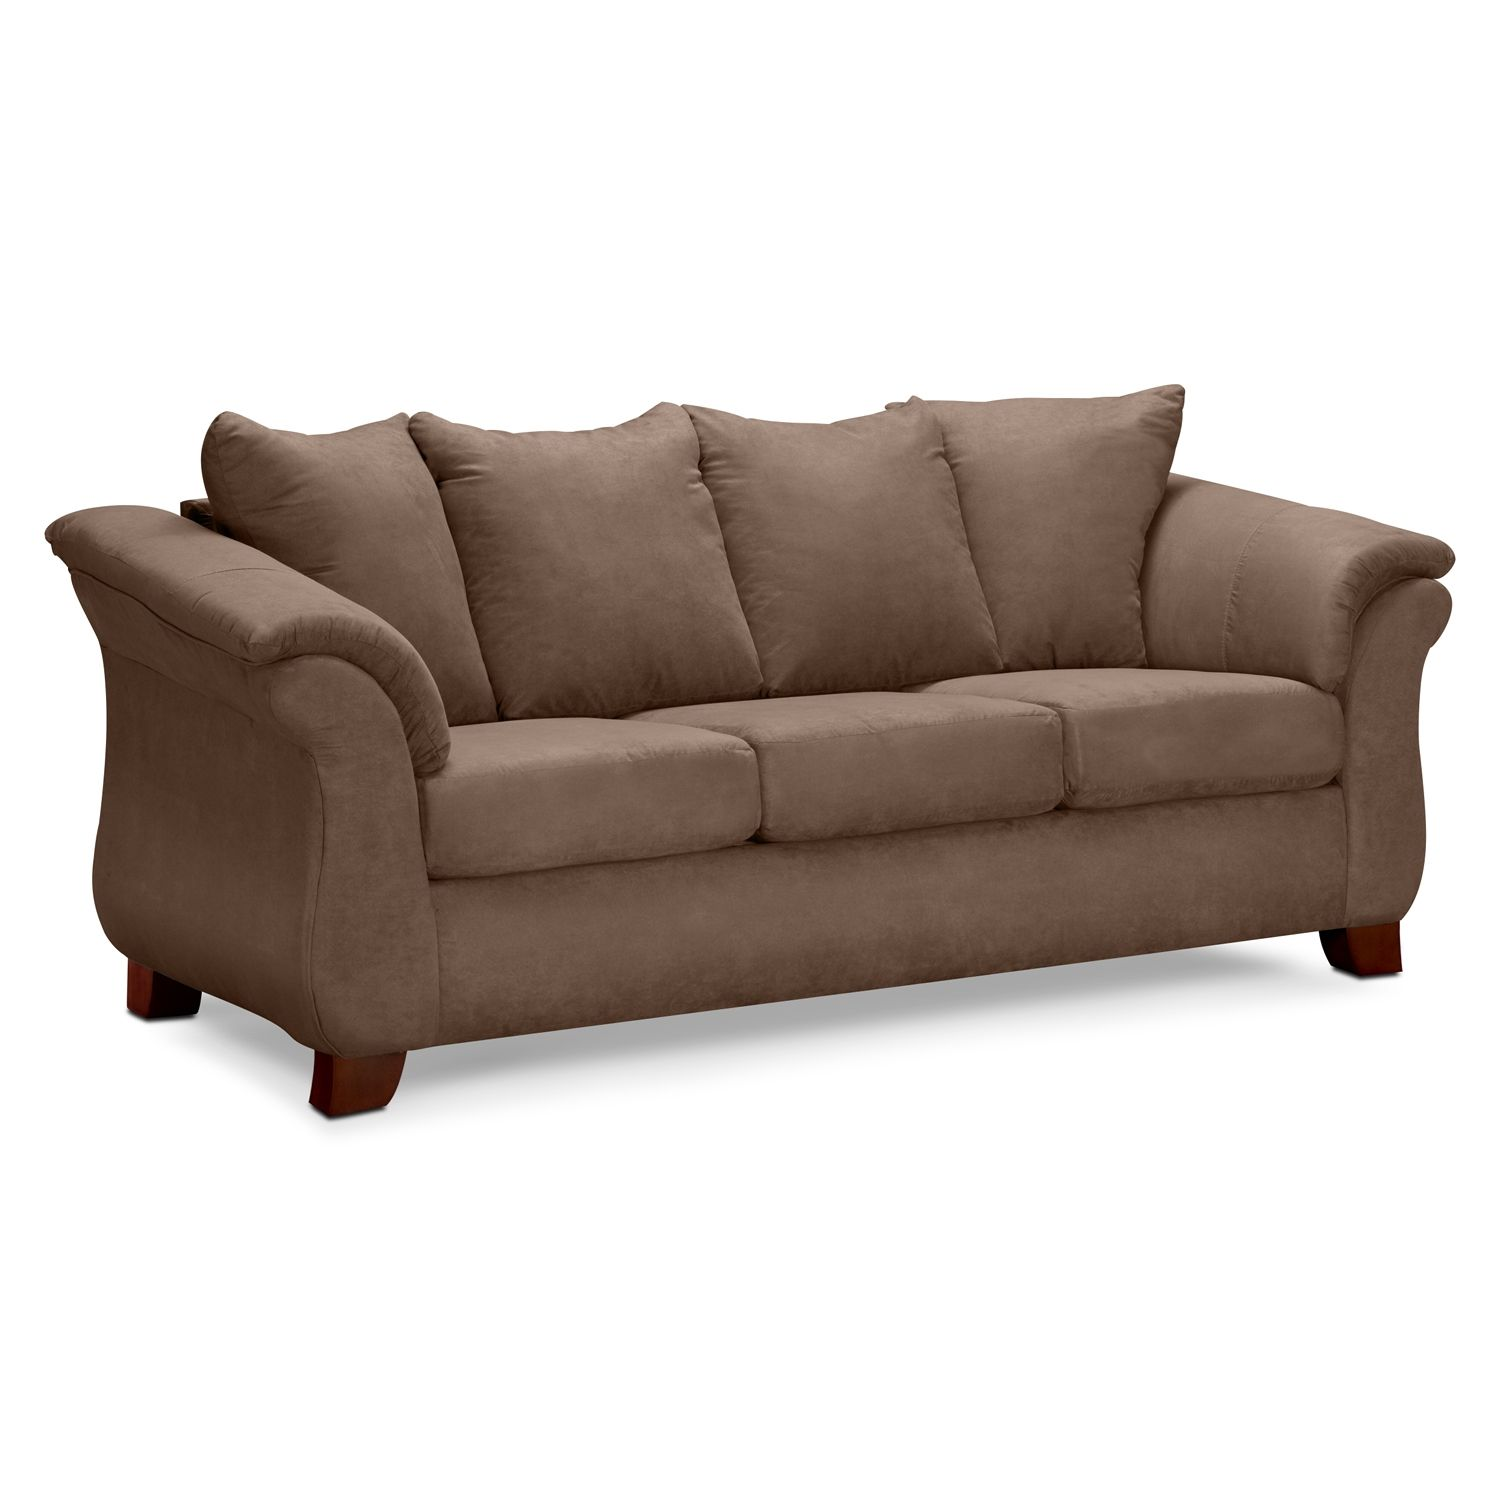 Living Room Furniture Leather And Upholstery Brown Couch For Brown Red Color Scheme Sunroom Pinterest